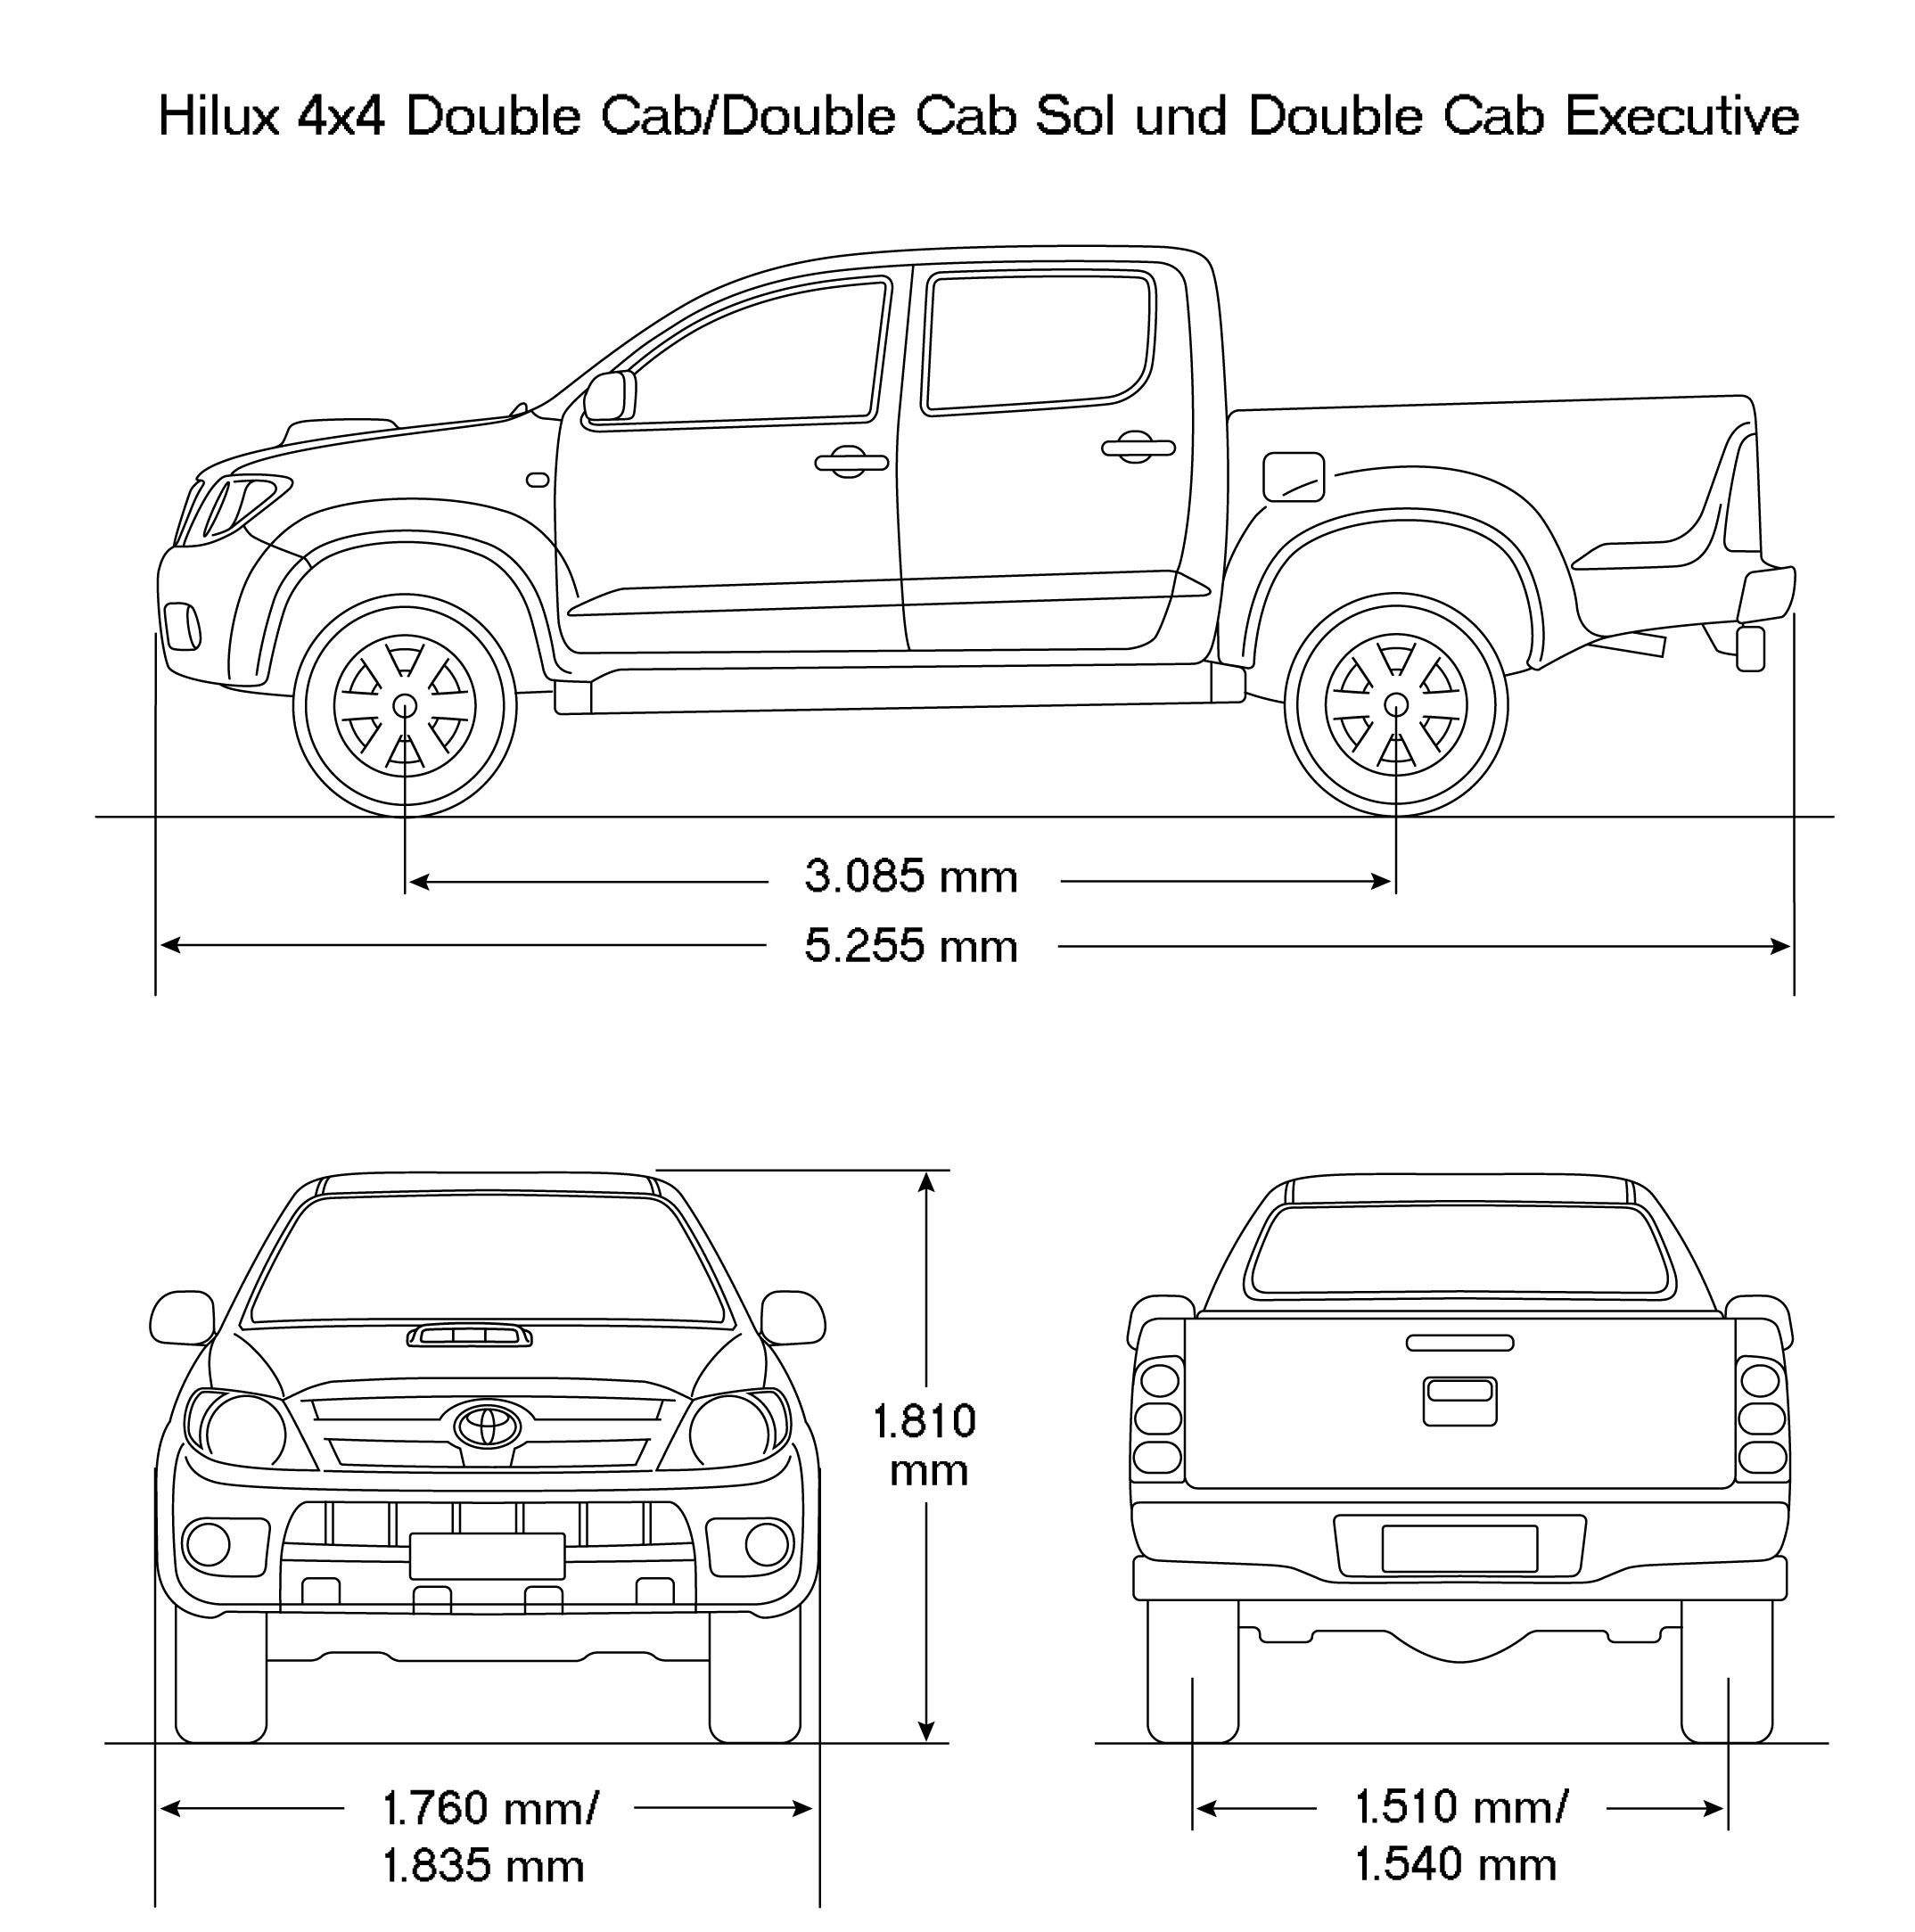 Toyota Tacoma Fuse Box Diagram 2015 Wiring Echo Hilux 2008 Blueprint Download Free For 3d Modeling 2011 2001